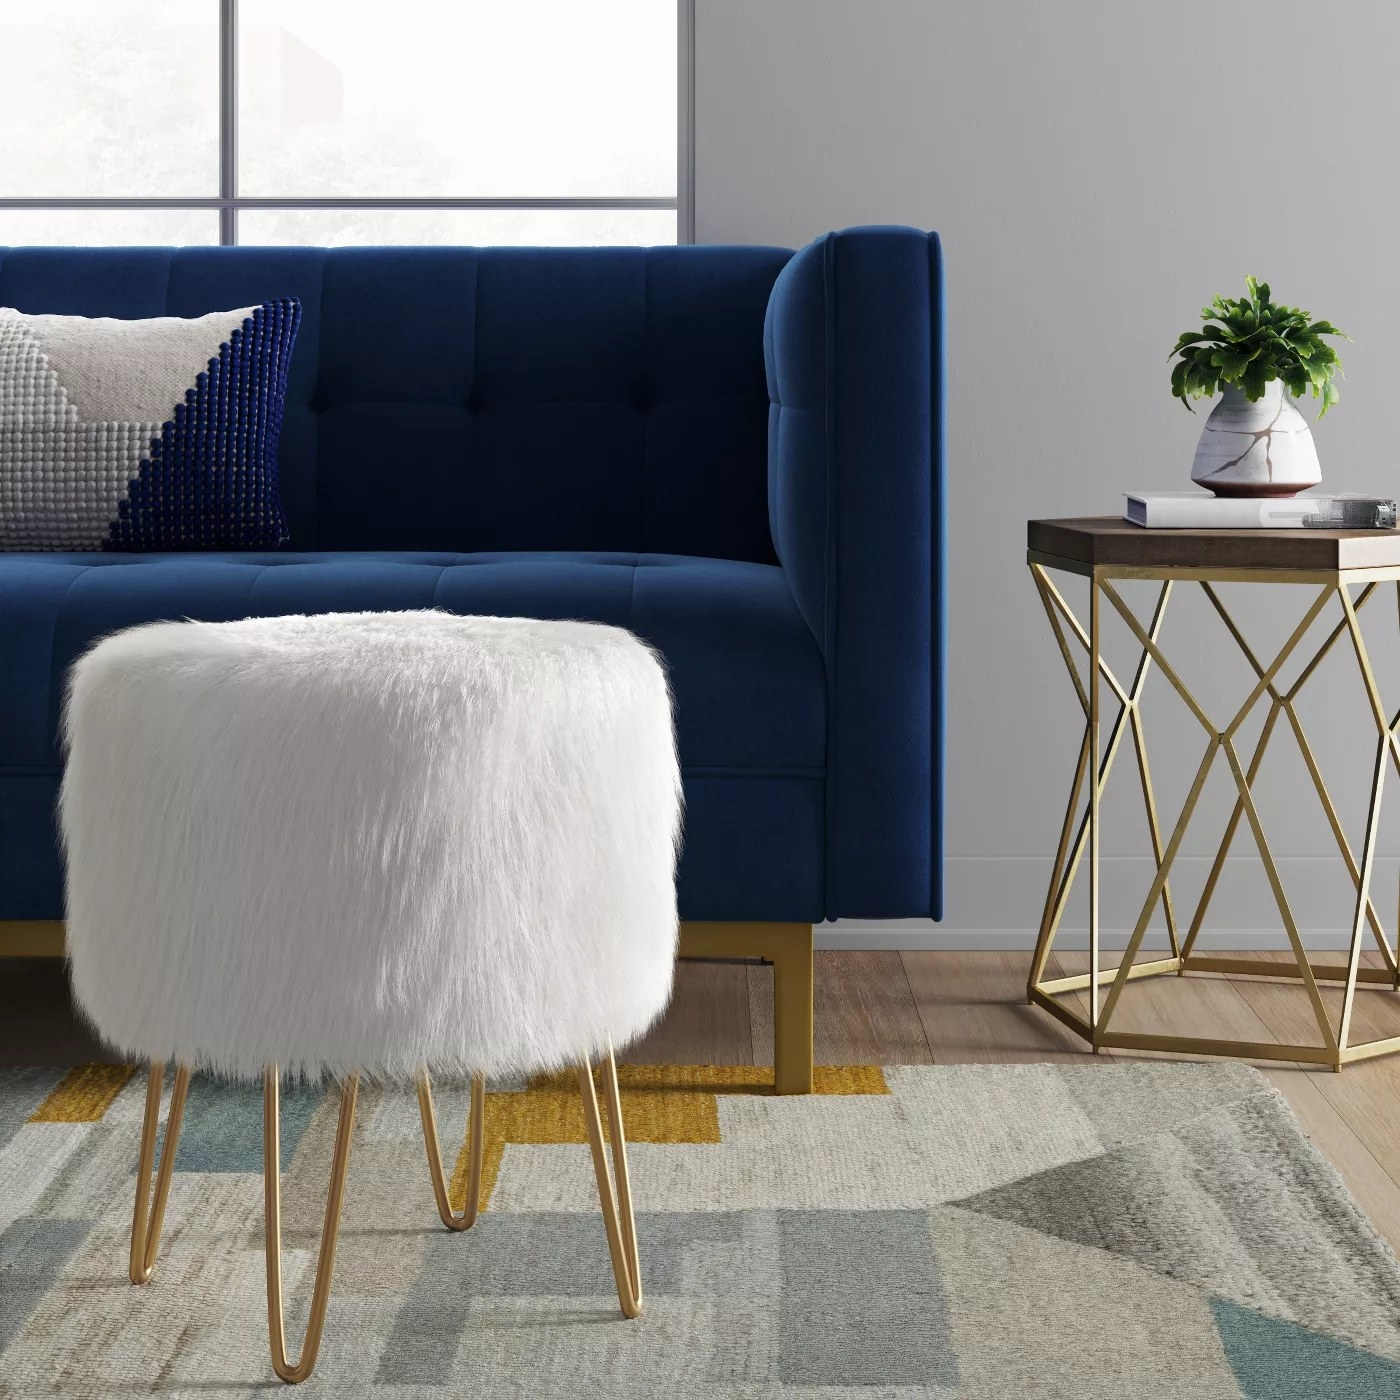 The white faux fur ottoman with metal pin legs